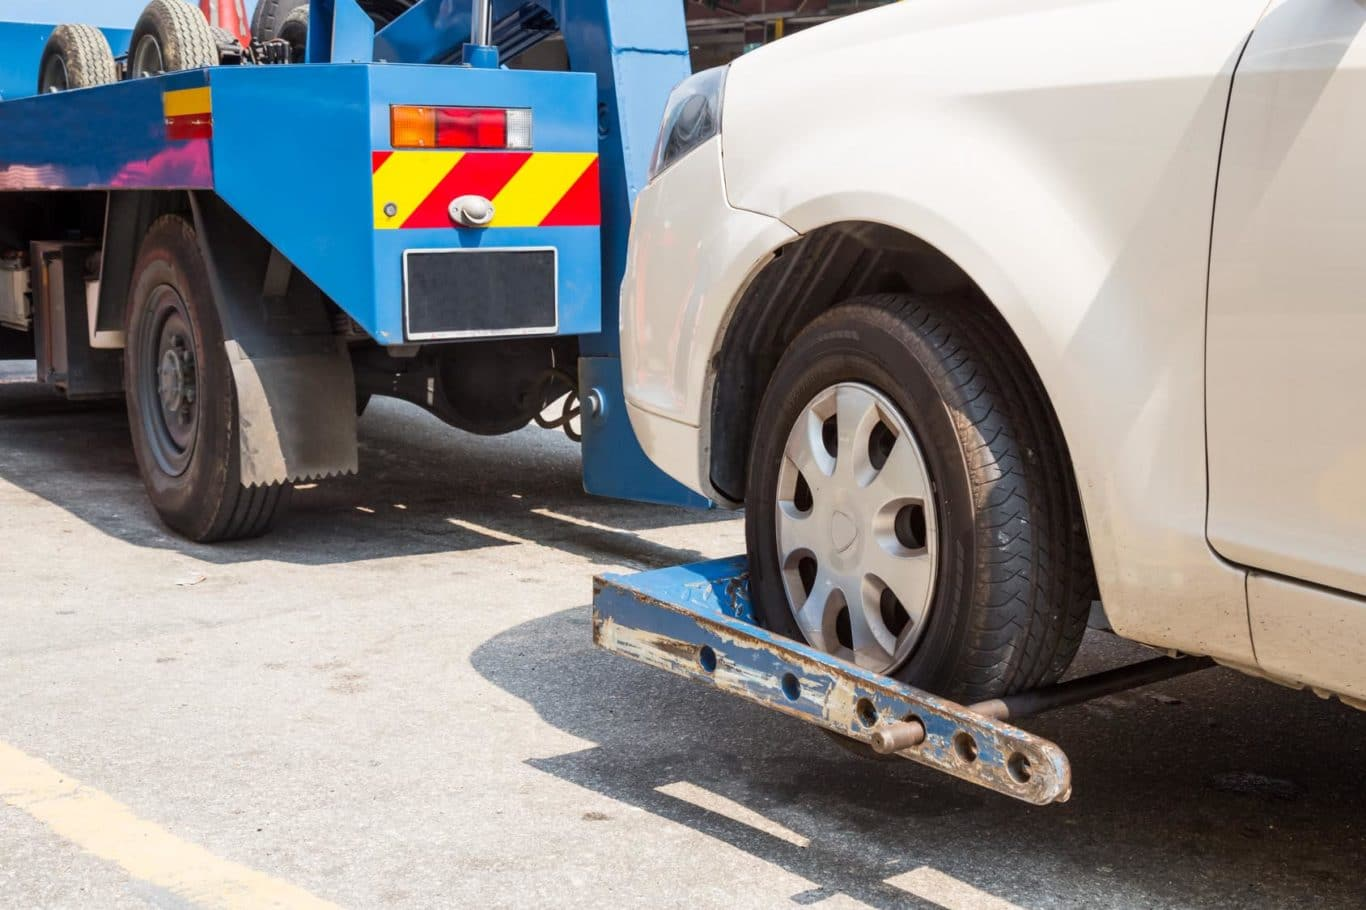 Valleymount expert Breakdown Recovery services